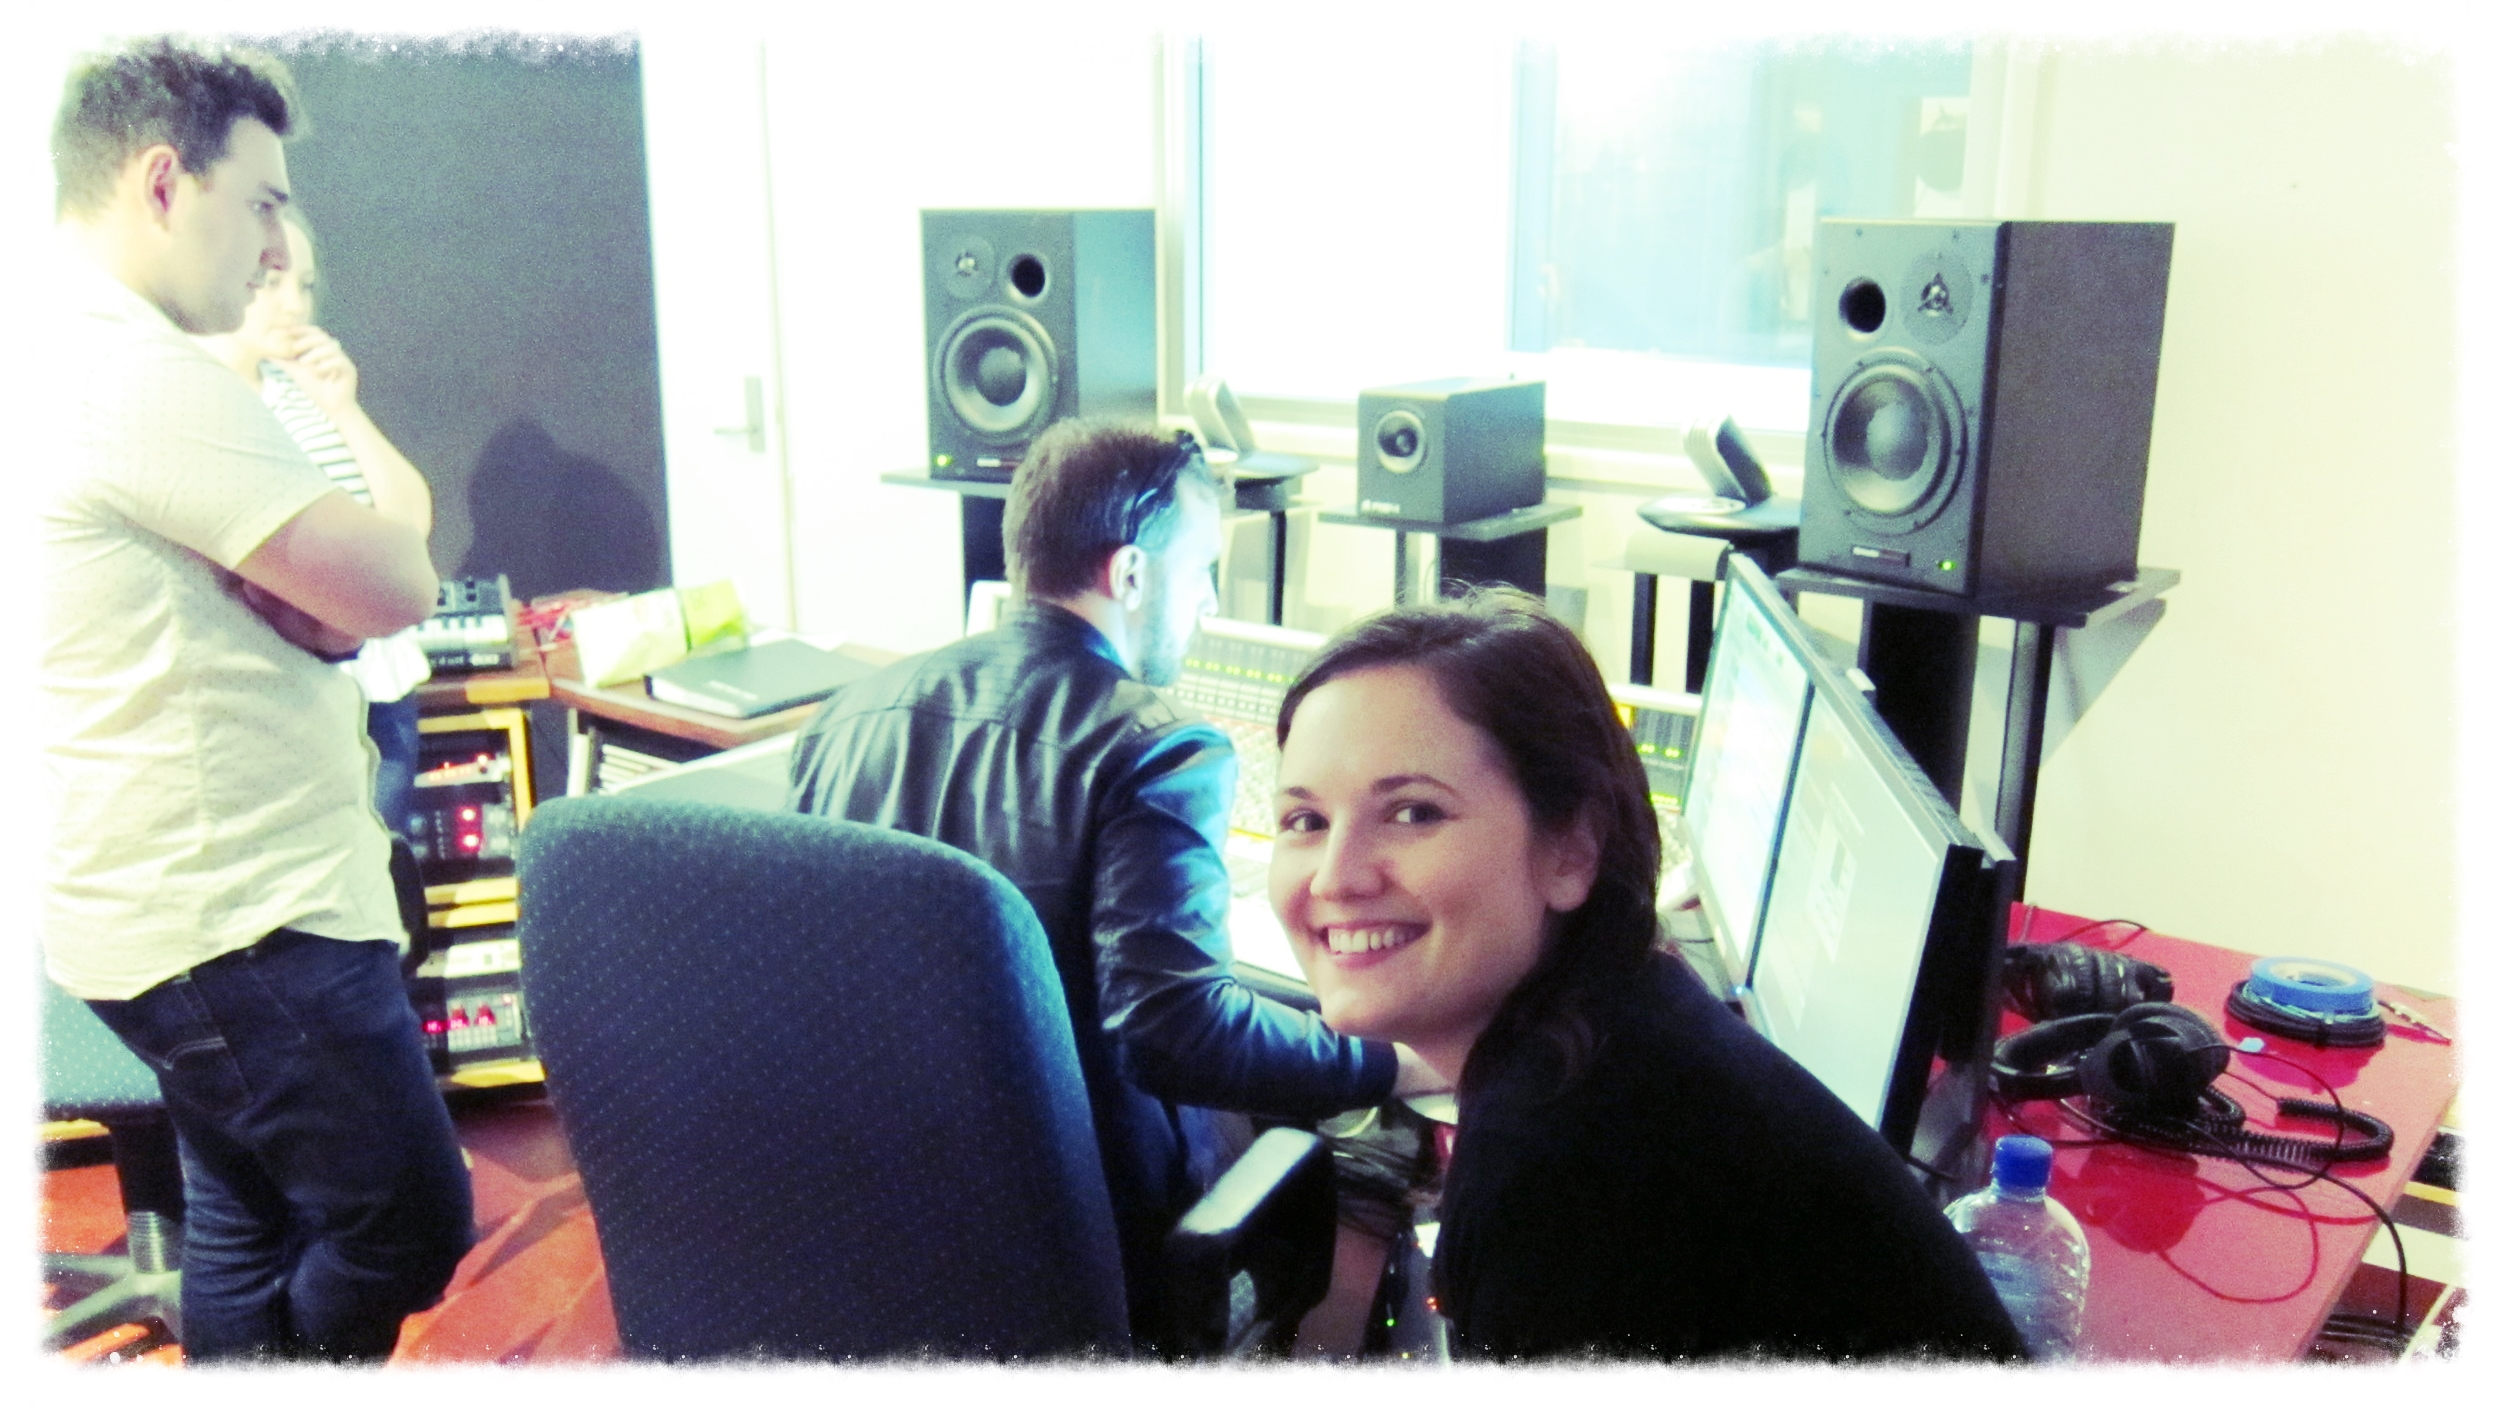 Happily listening back! (While the others are stressing over some technical issues).